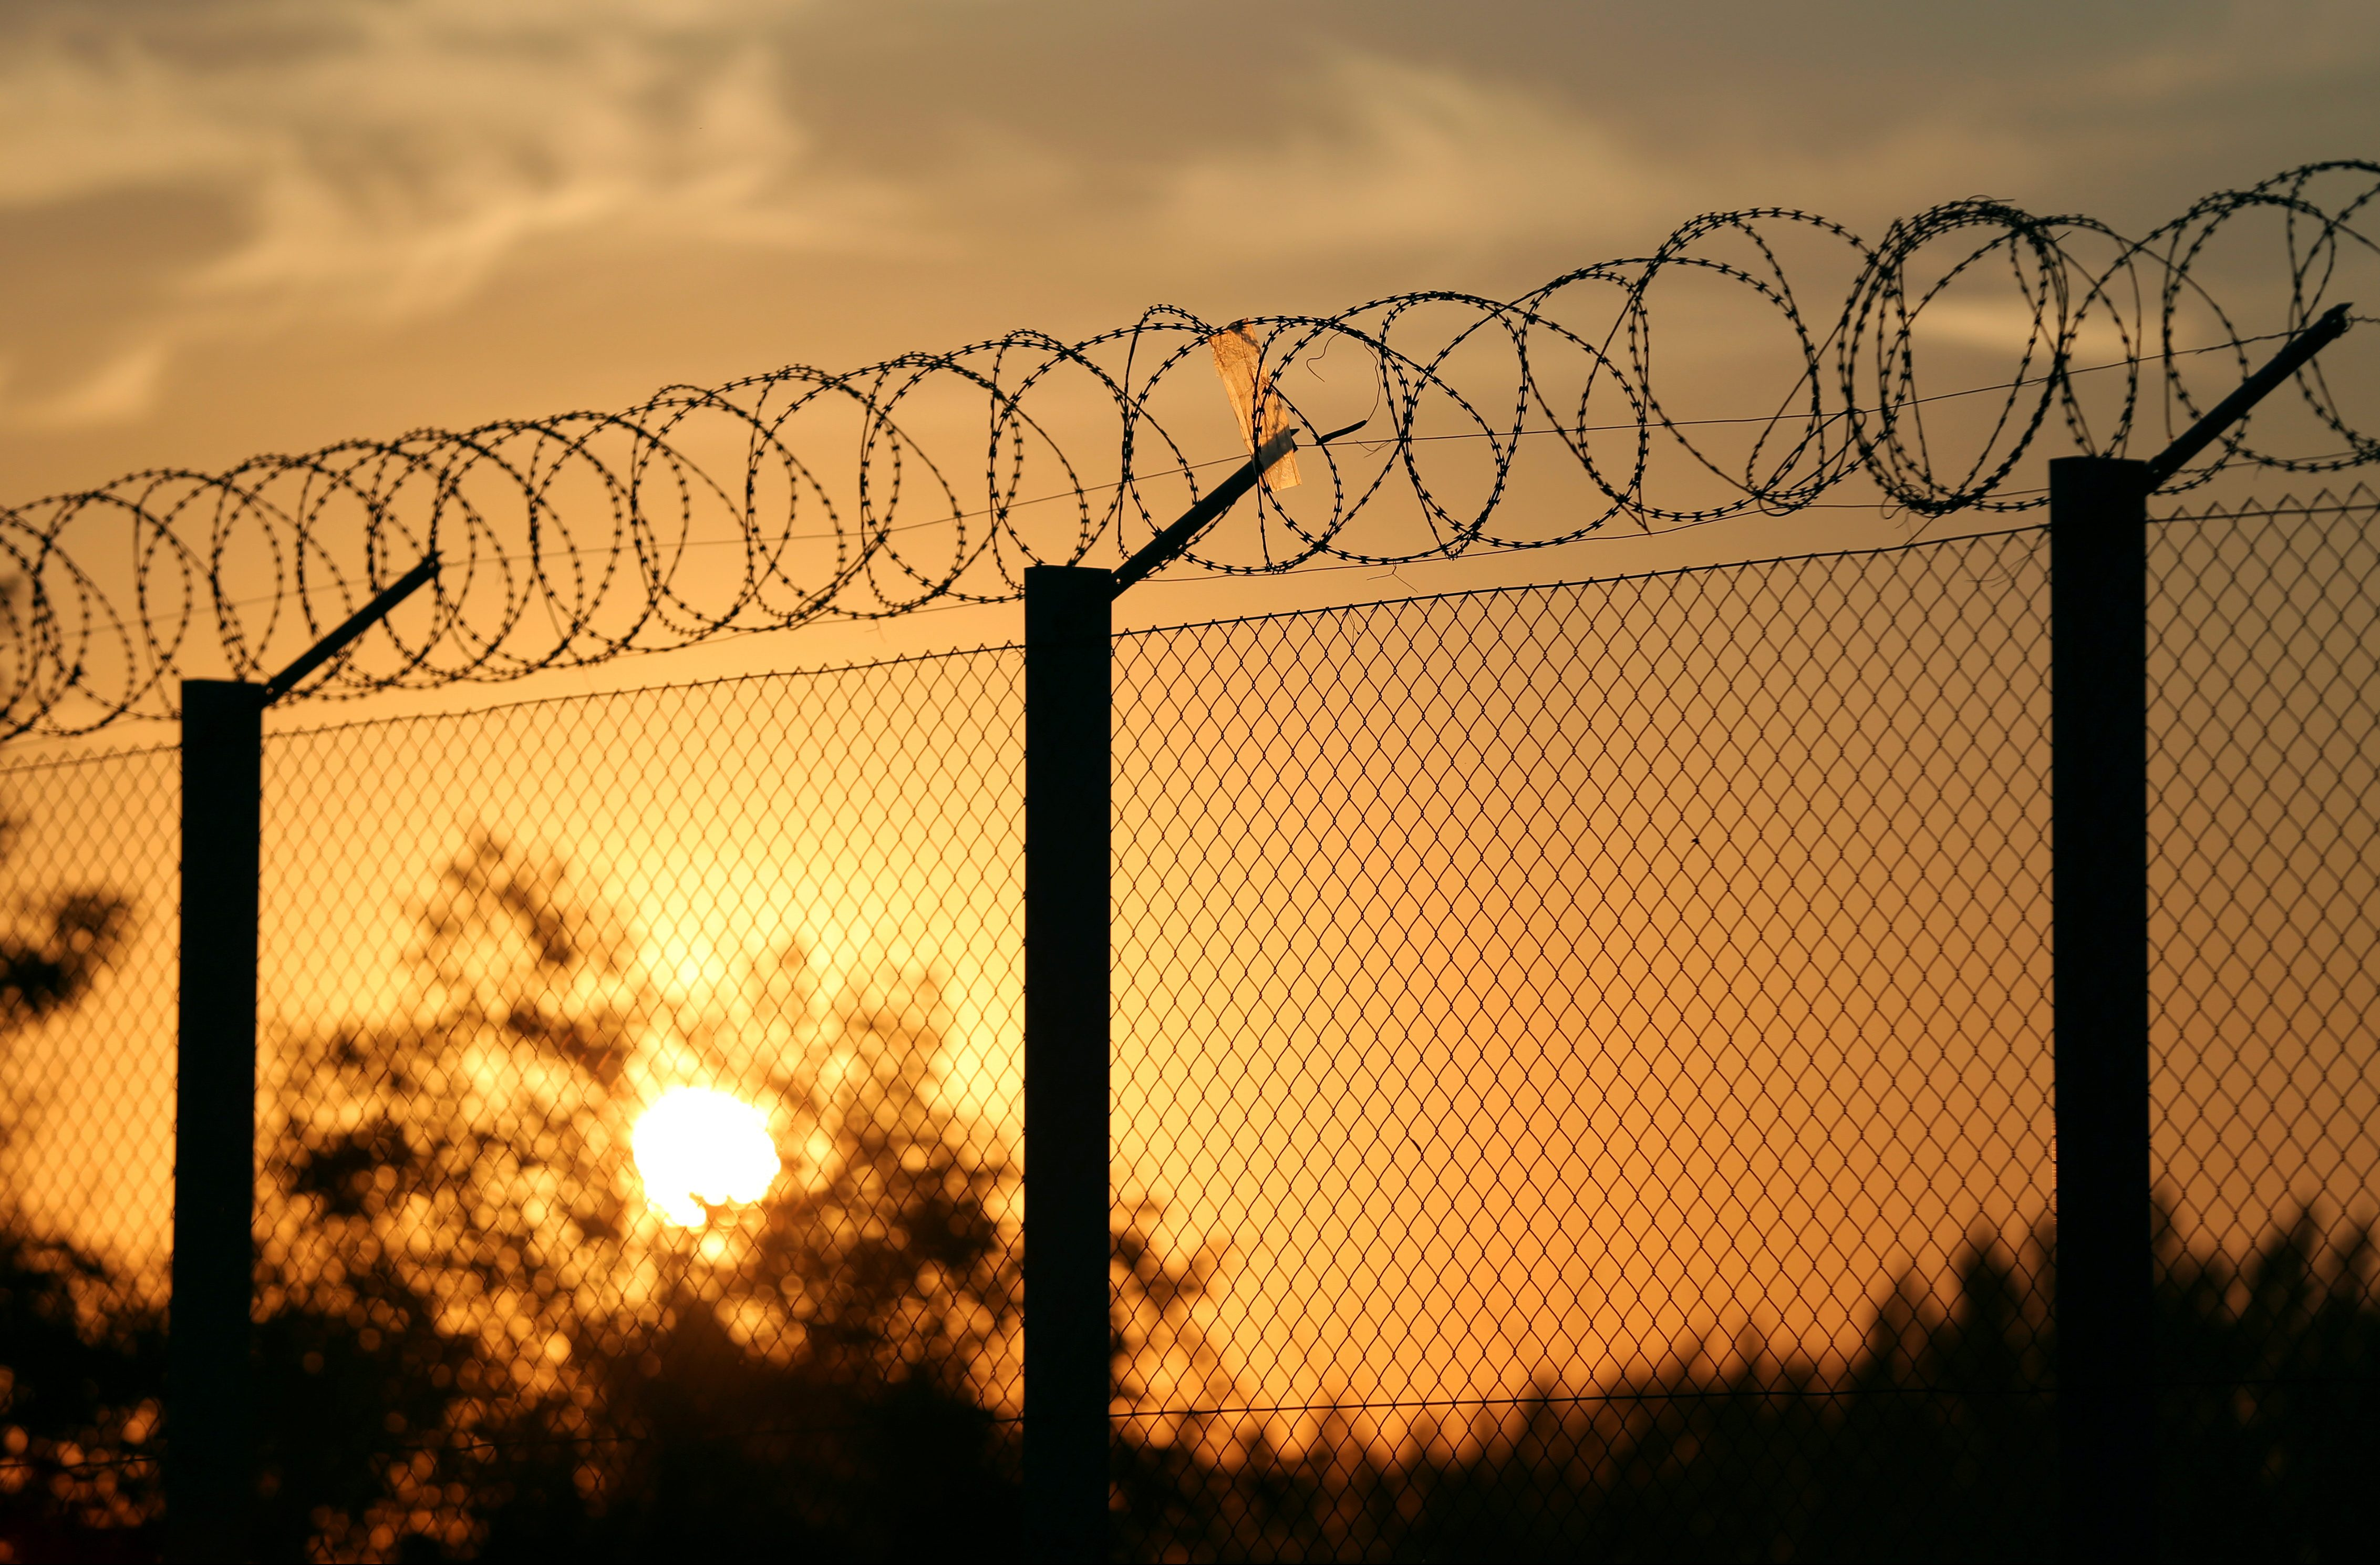 The Sun rises at the Hungary-Serbia border fence